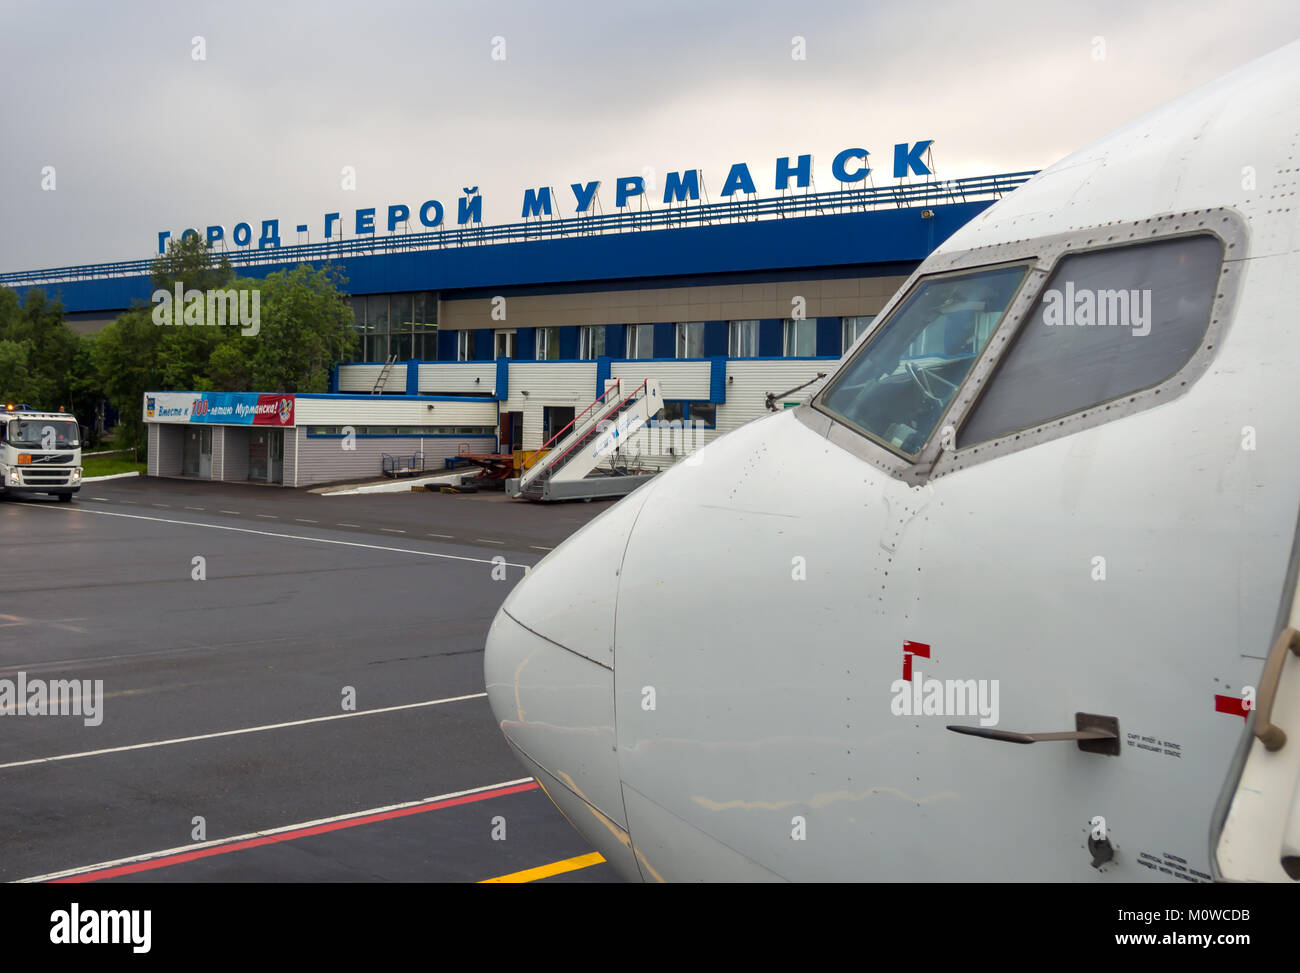 Murmansk, Russia - June 25, 2016: View of the building of the airport of Murmansk on the part of the airfield - Stock Image